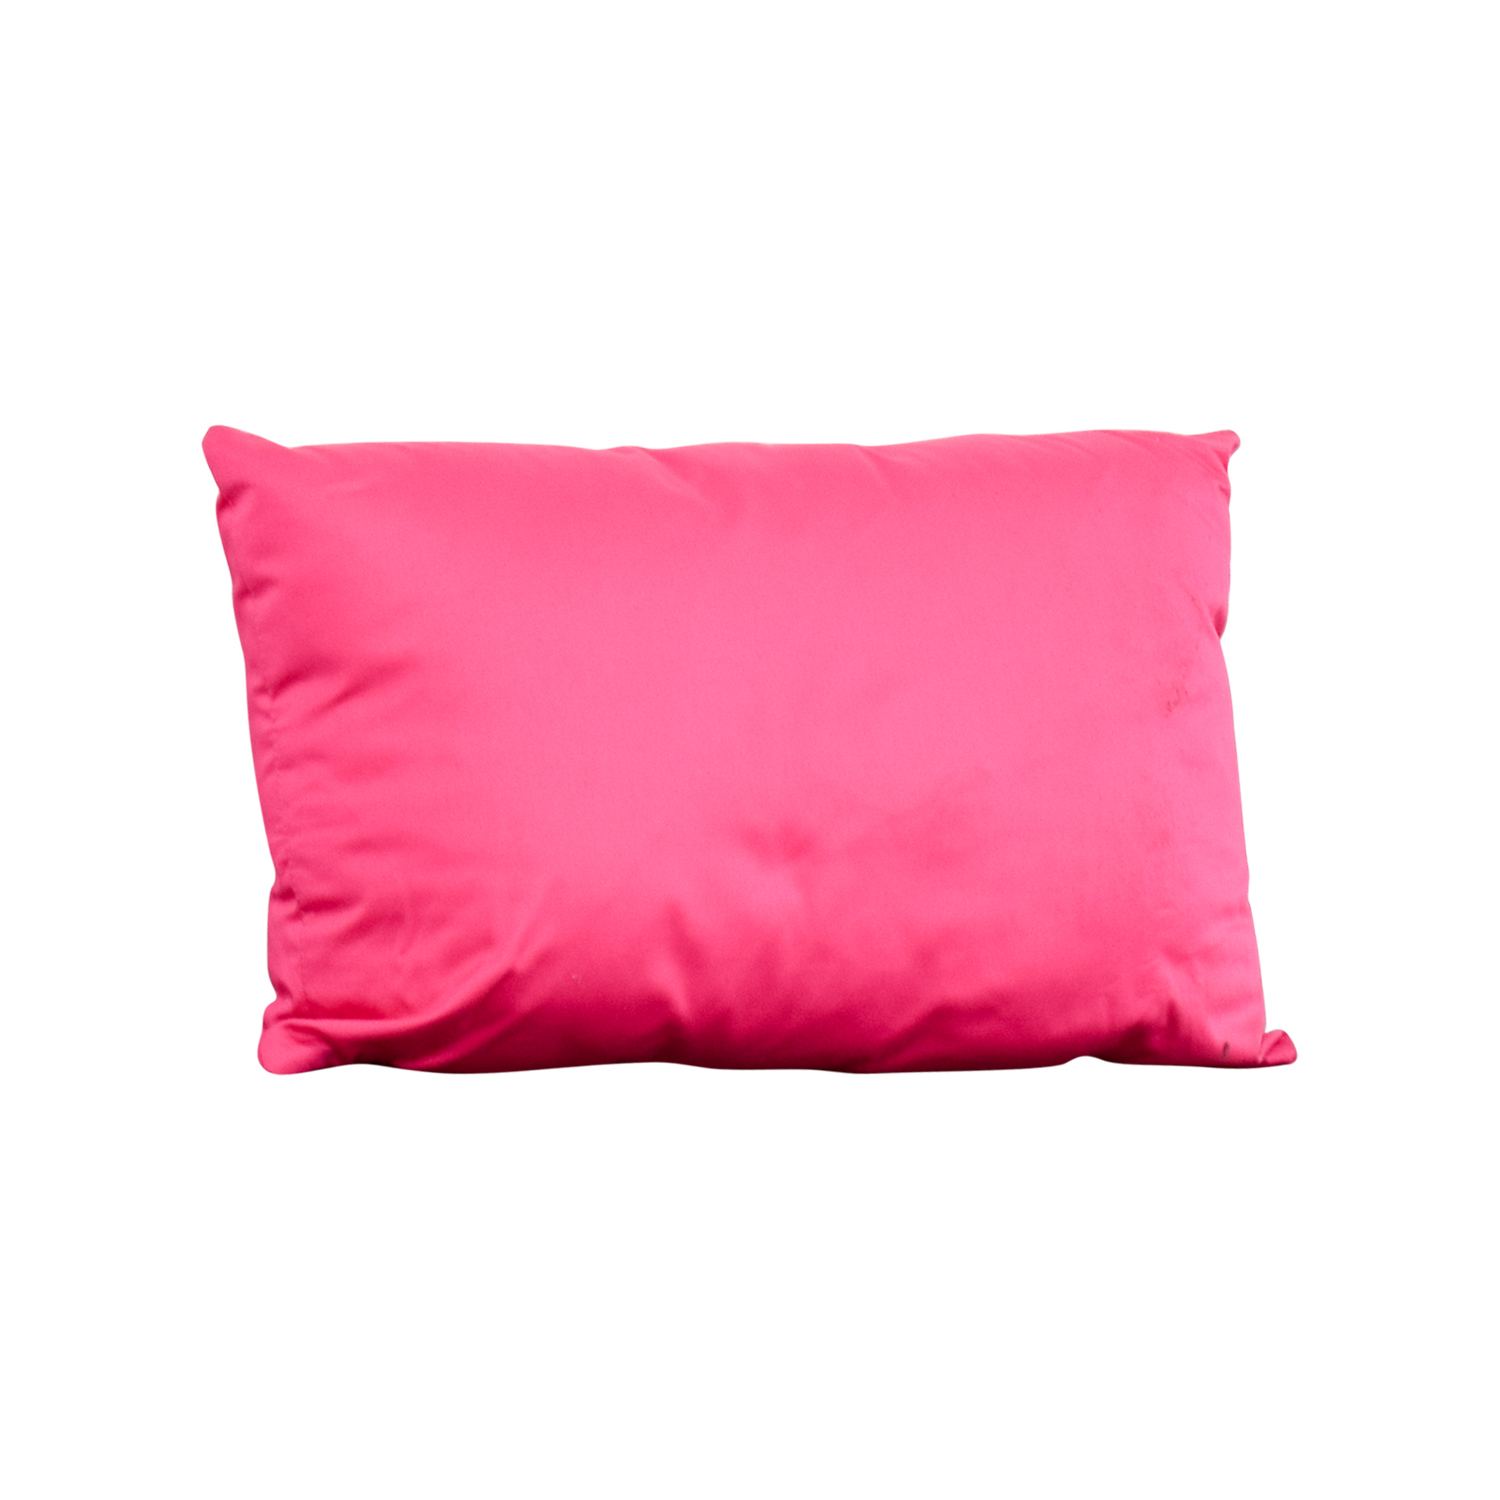 Society Social Society Social Hot Pink Pillow coupon